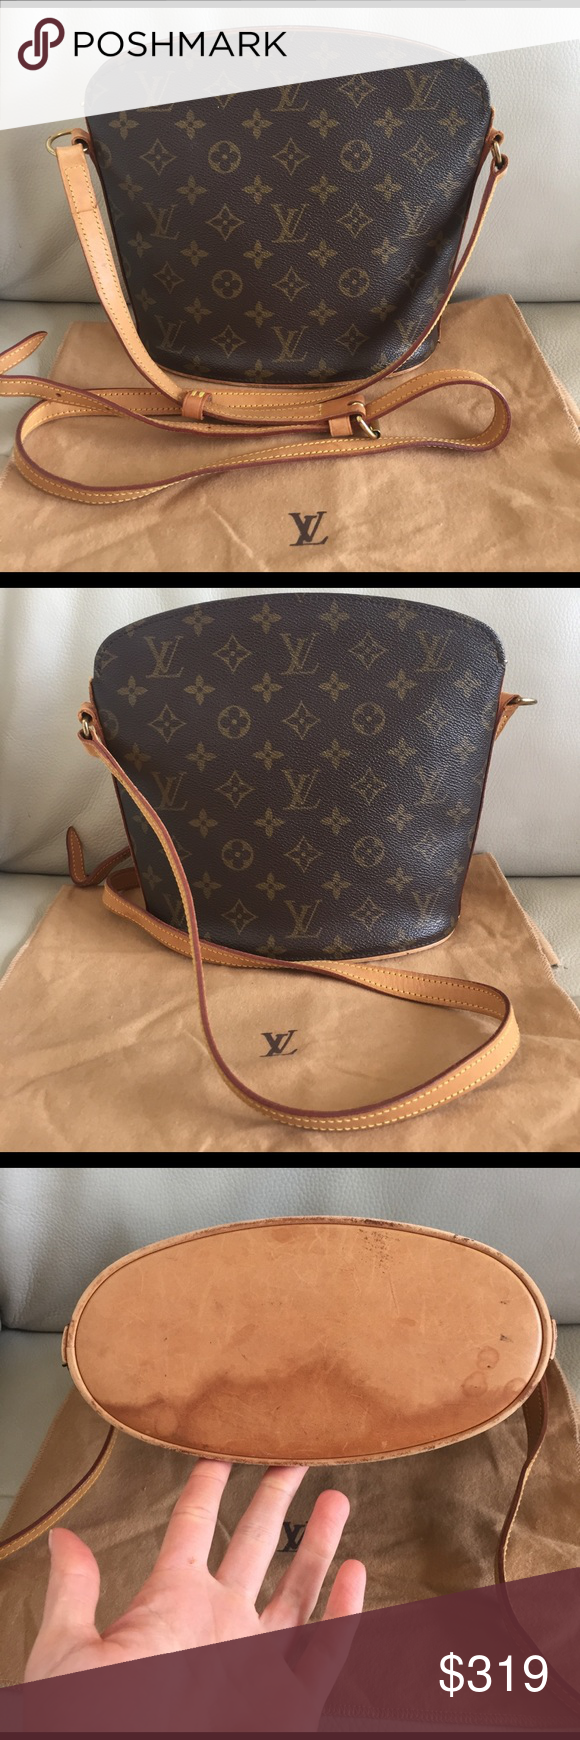 """💯Authentic Louis Vuitton Drouot crossbody vintage Classic vintage. Cross Body. Leather bottom has dirty stains. Straps have turned into a honey patina, have minor stains, scratches and show wear. Inside is clean, except the pocket that is peeling. Monogram canvas has no rips or tears. Measurements: 9.44W x 8.66H x 3.93D"""" - straps: 43-50"""" approx. made in France in November, 2011 - date code: VI1011 - Check pictures for signs of wear. 100% Authentic - comes with dust bag Louis Vuitton Bags…"""